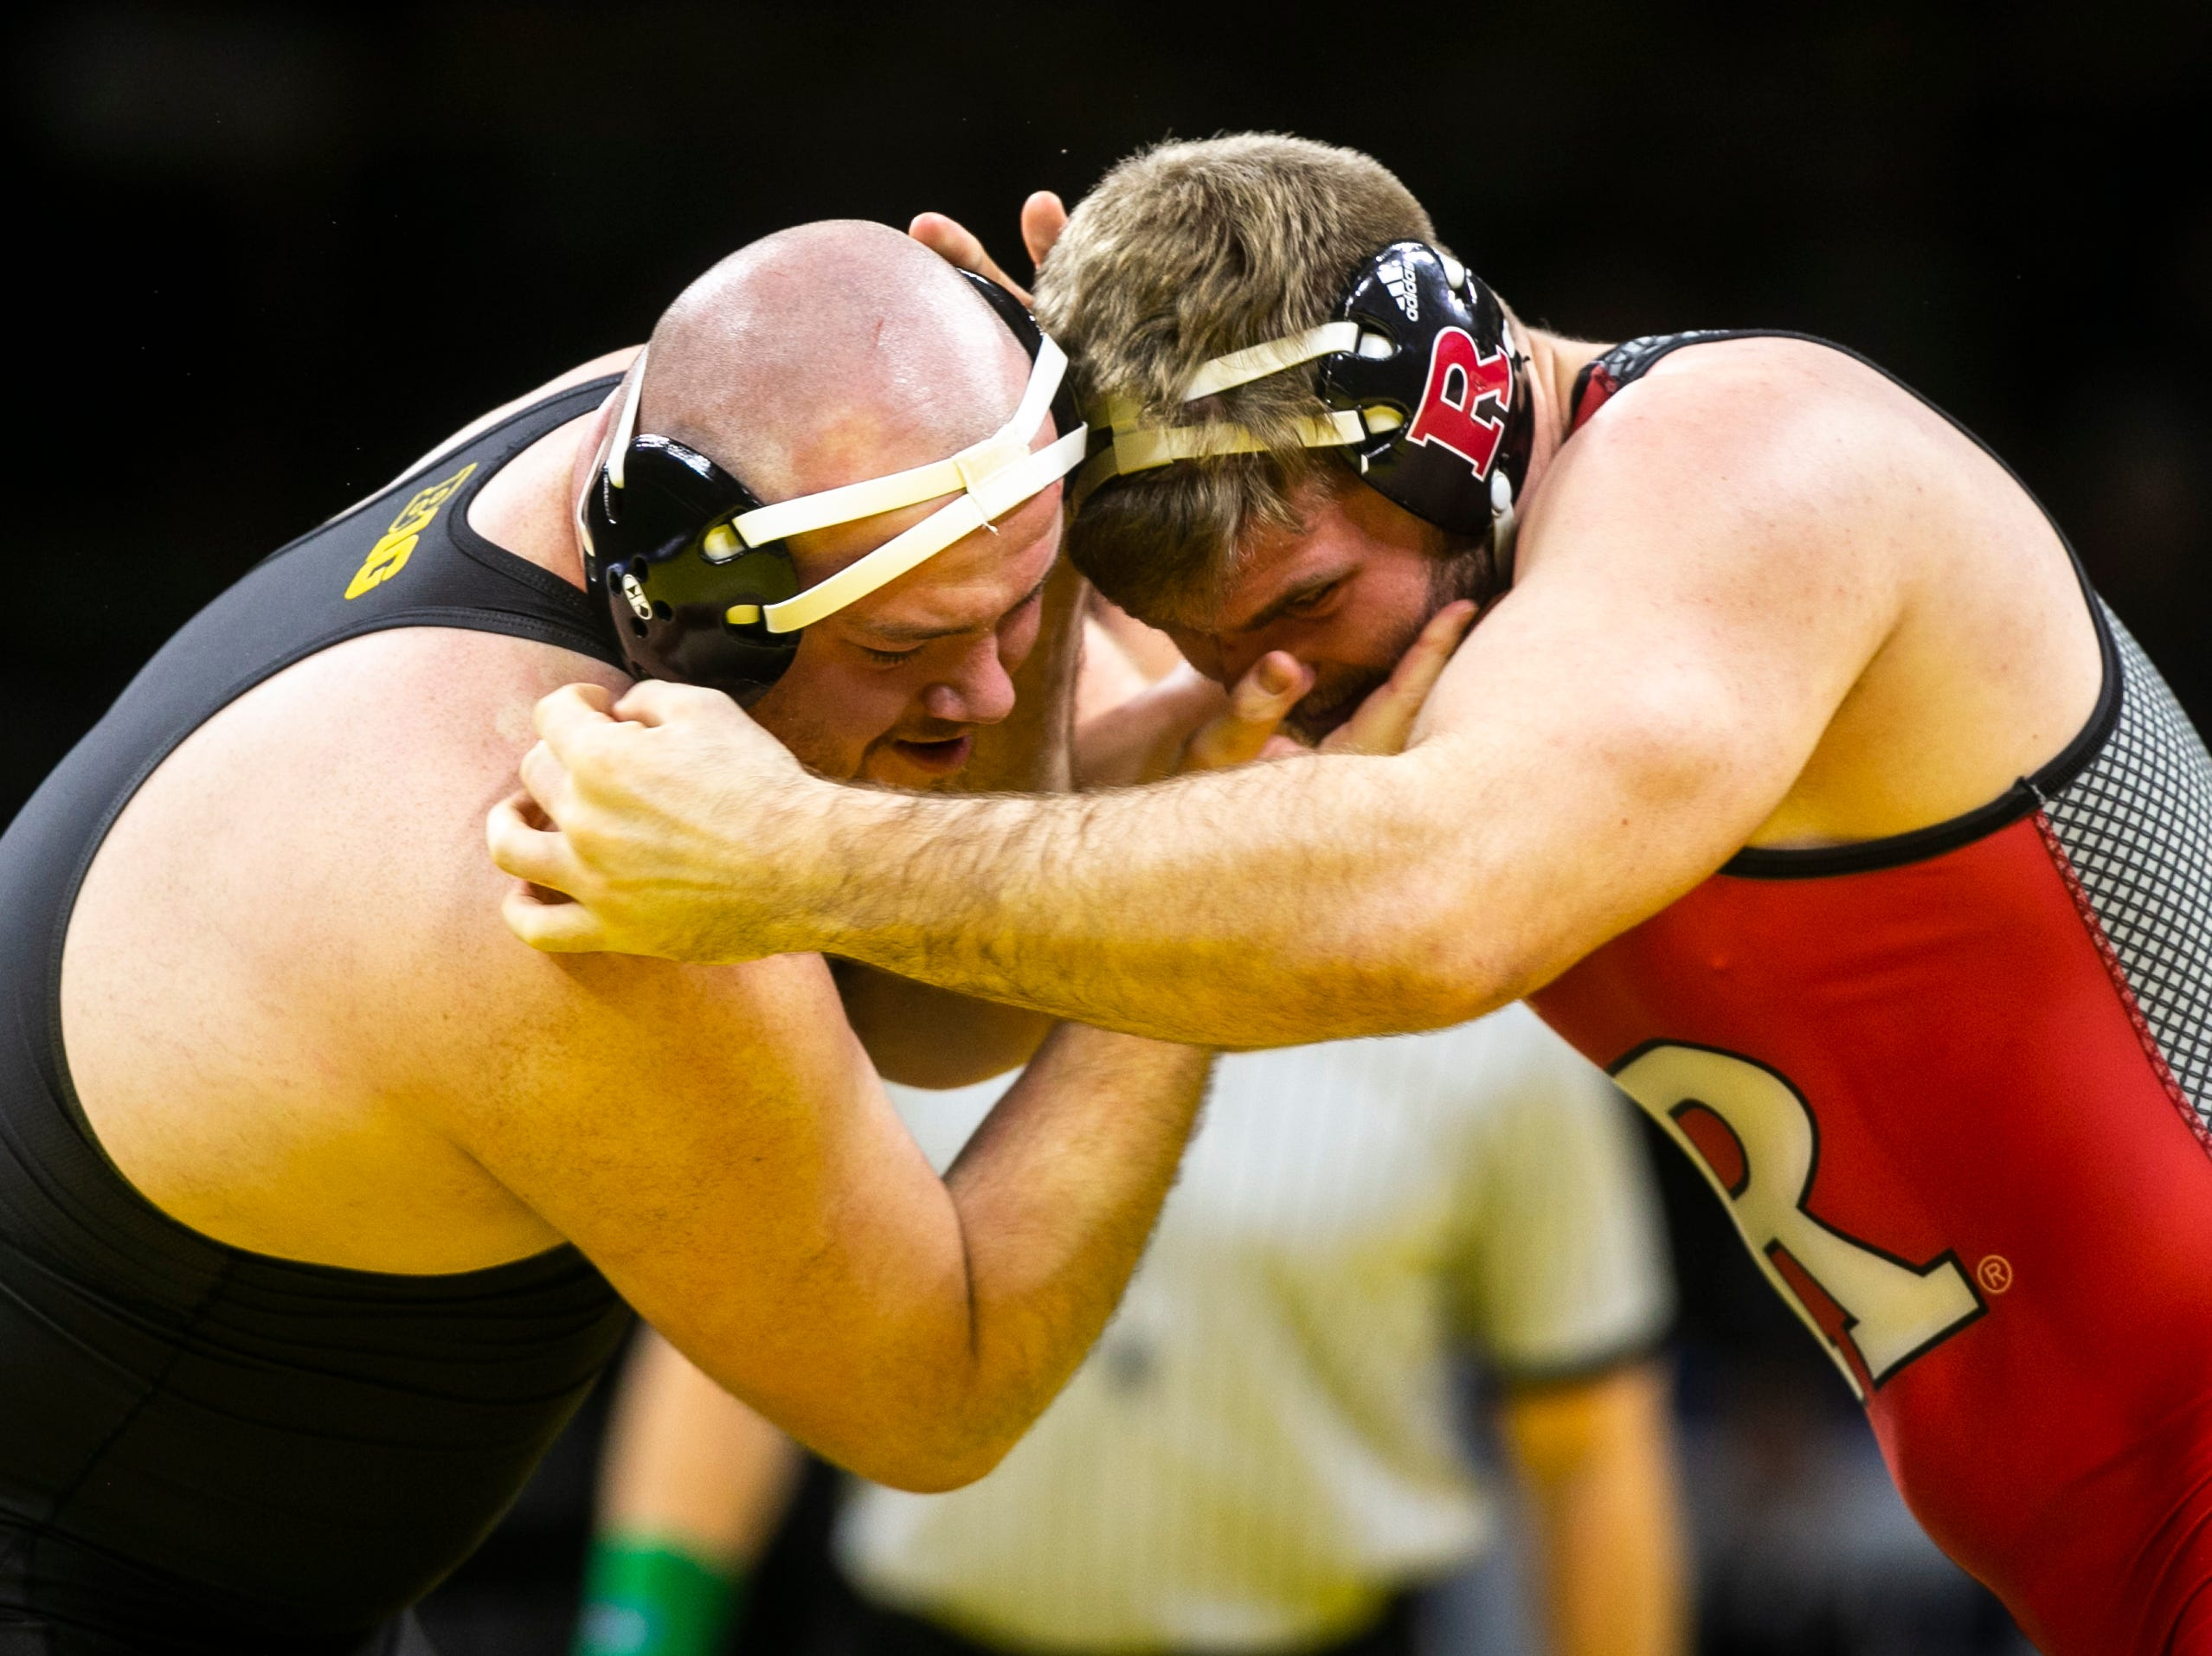 Iowa's Sam Stoll, left, wrestles Rutgers' Christian Colucci at 285 during a NCAA Big Ten Conference wrestling dual on Friday, Jan. 18, 2019, at Carver-Hawkeye Arena in Iowa City, Iowa.